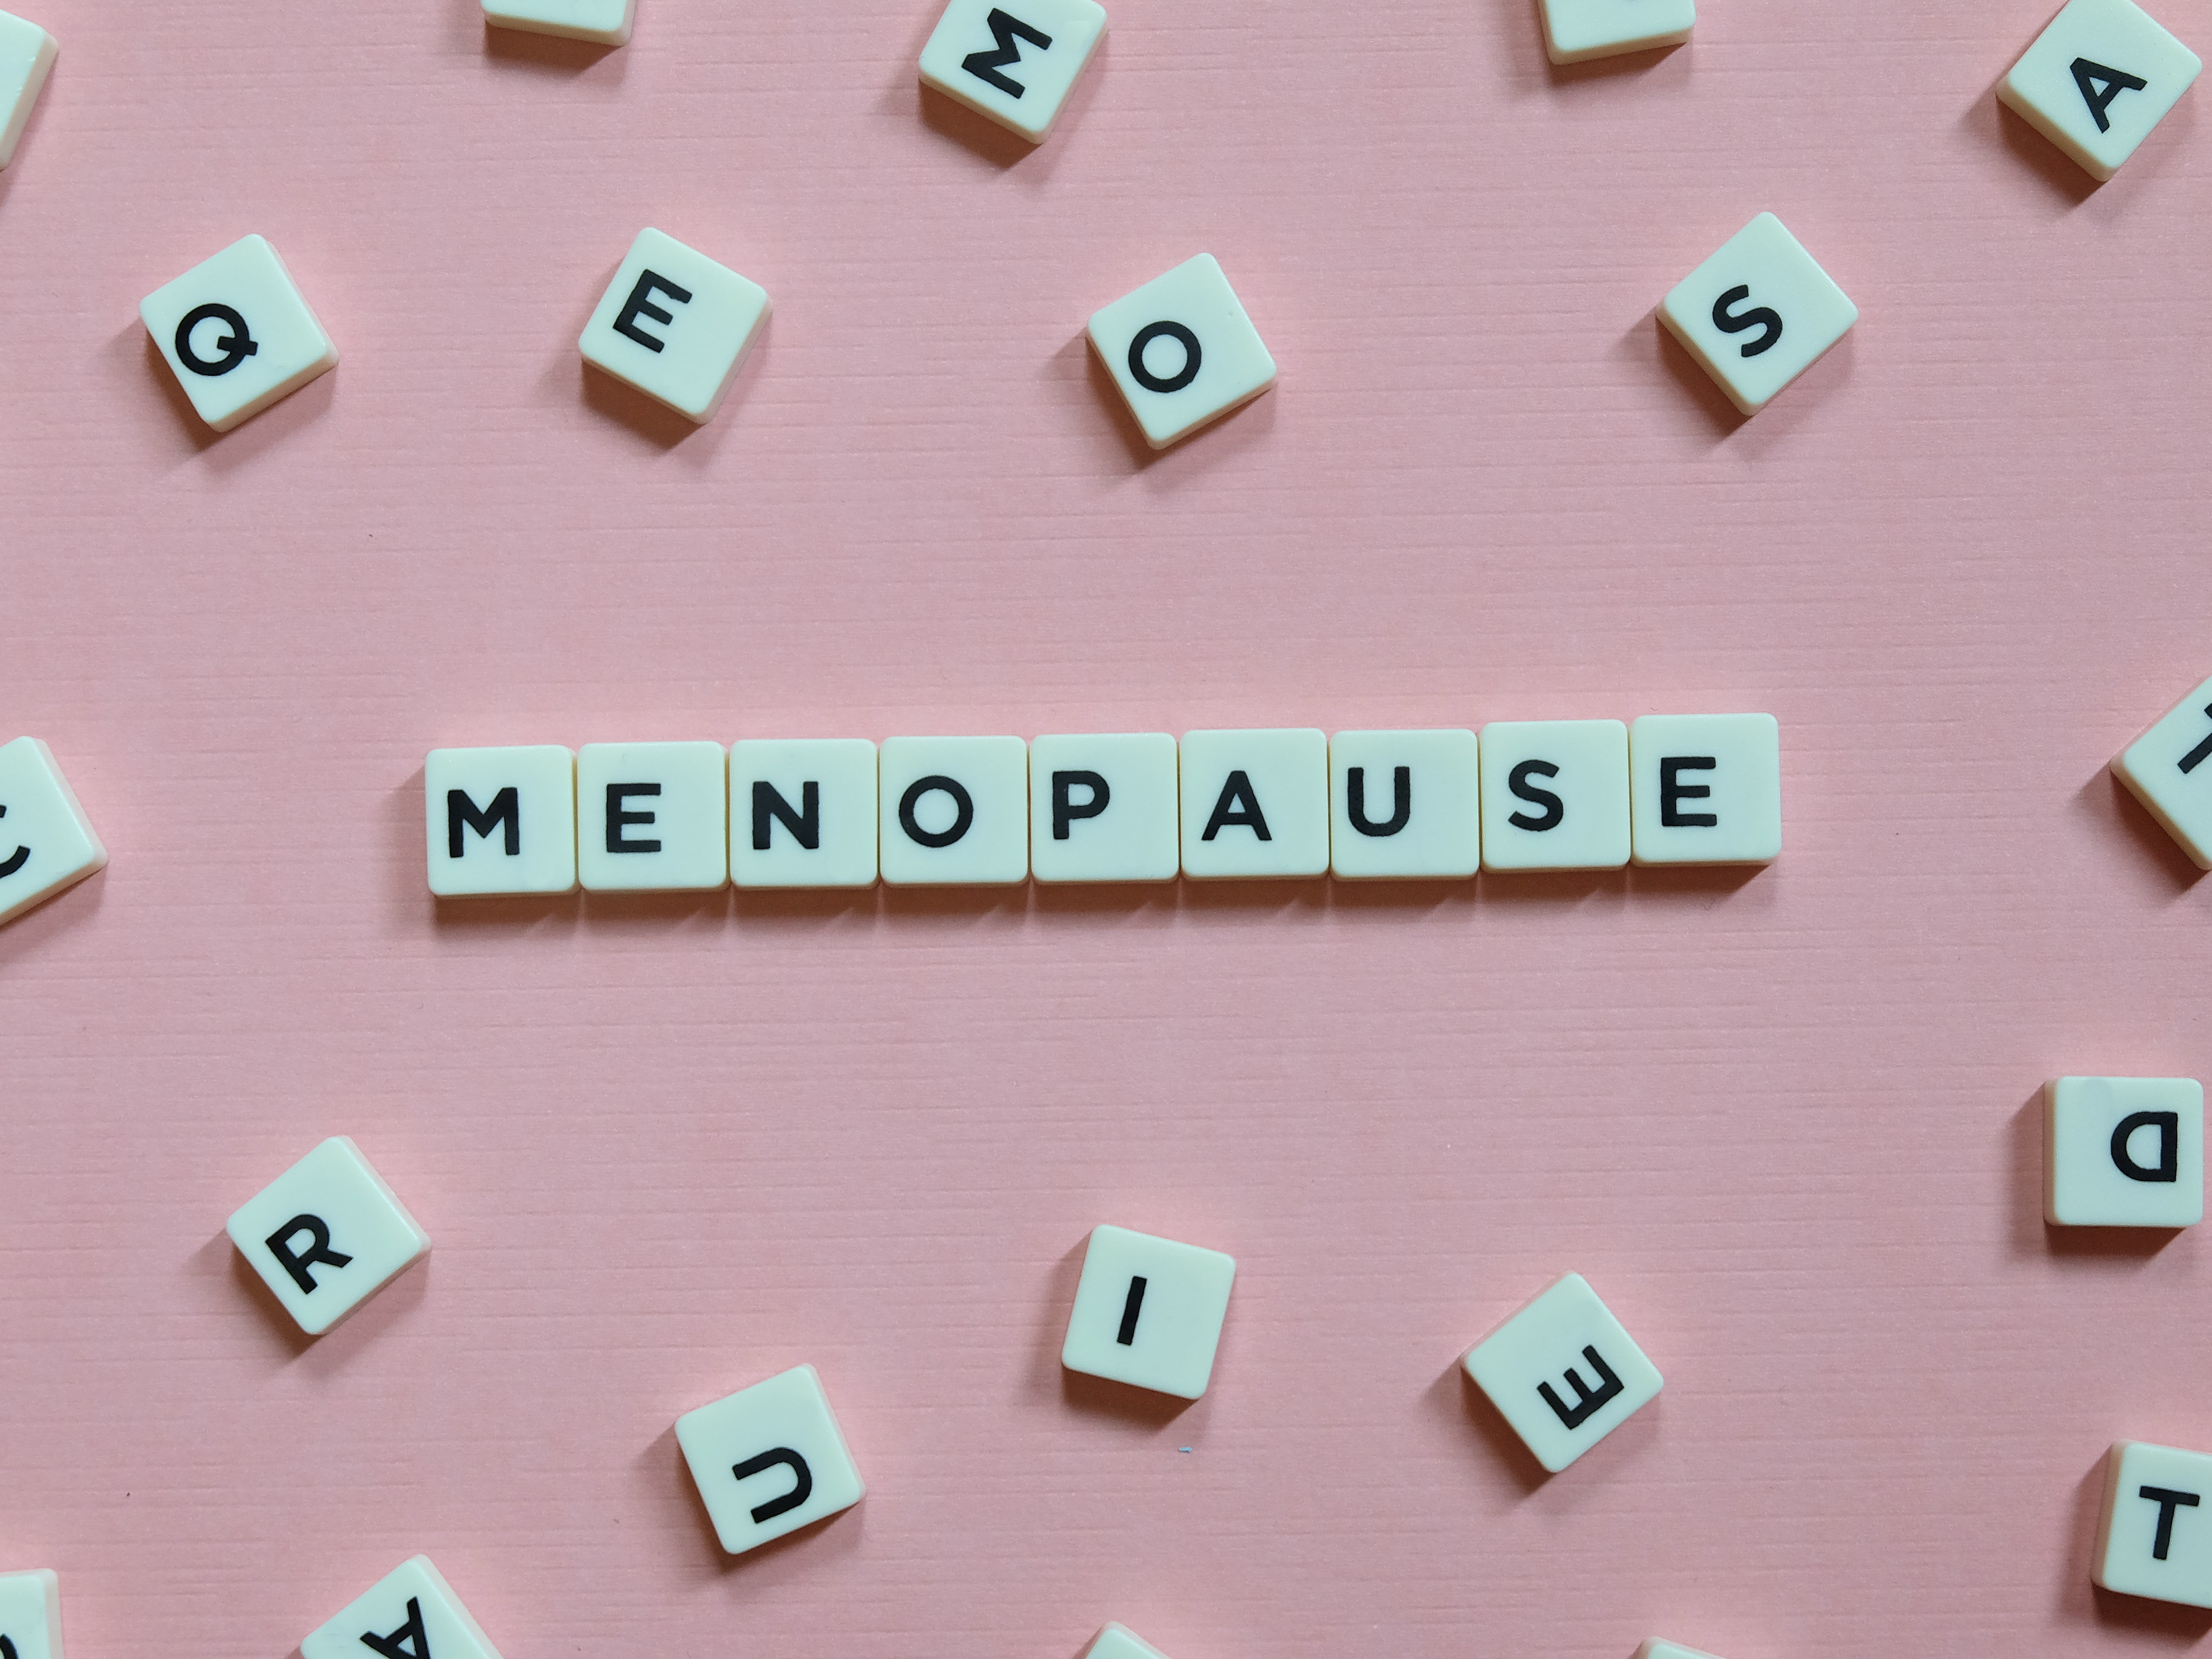 How can businesses support menopausal employees?